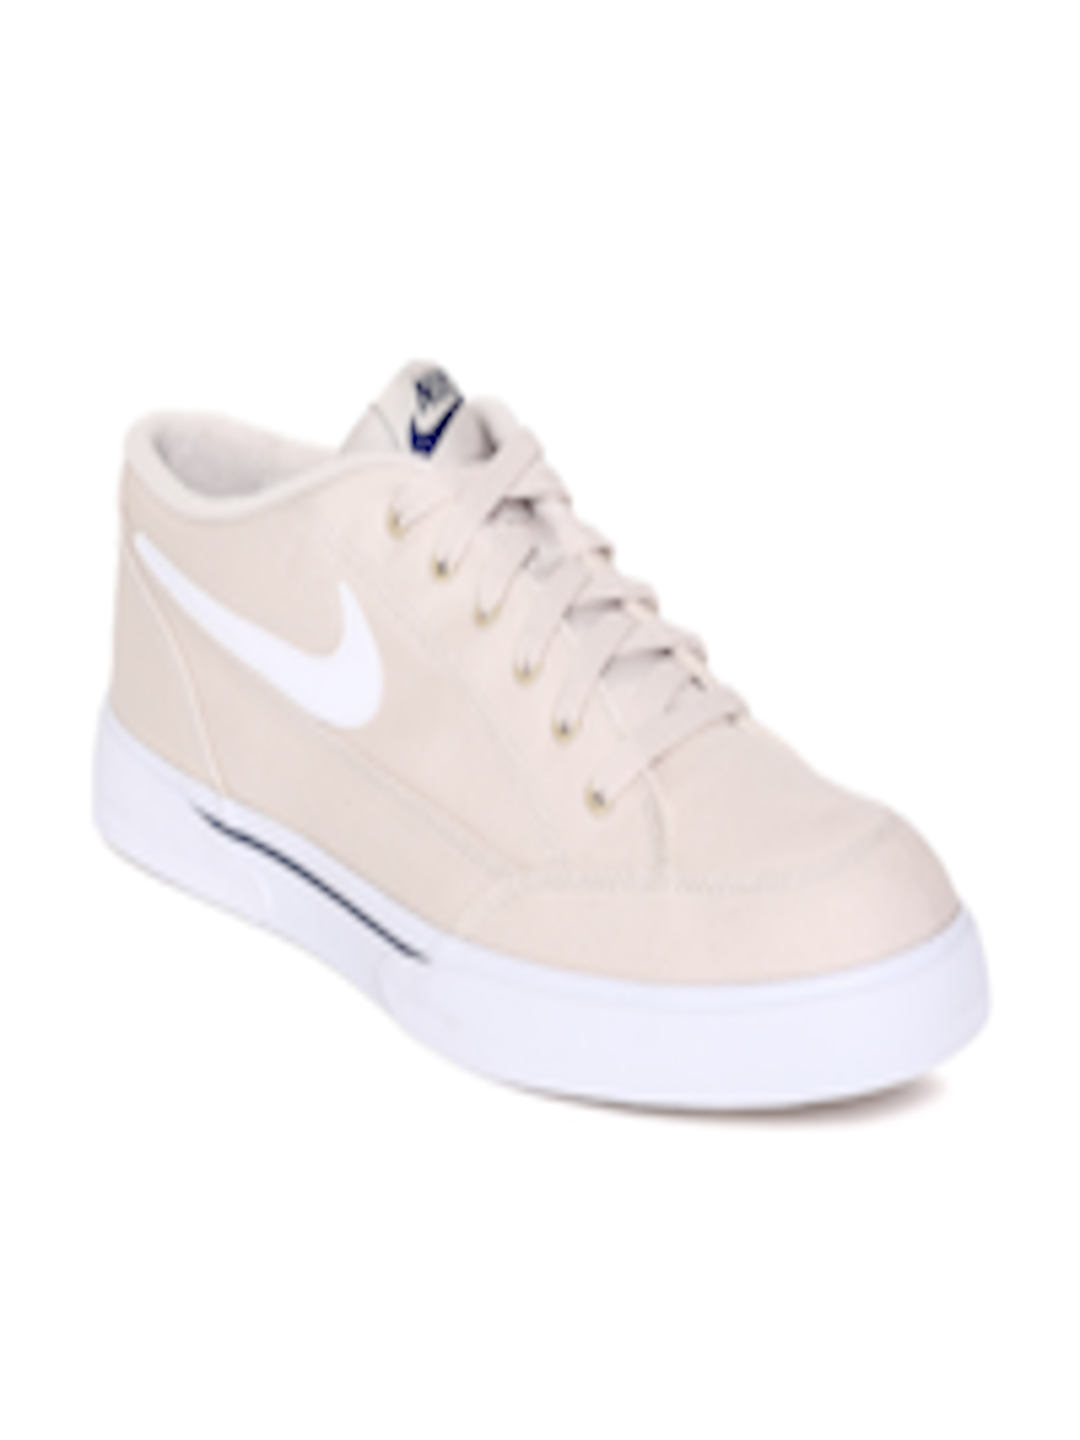 new product 598ae 01efa Buy Nike Men Pink NIKE GTS  16 TXT Sneakers - Casual Shoes for Men 6677007    Myntra